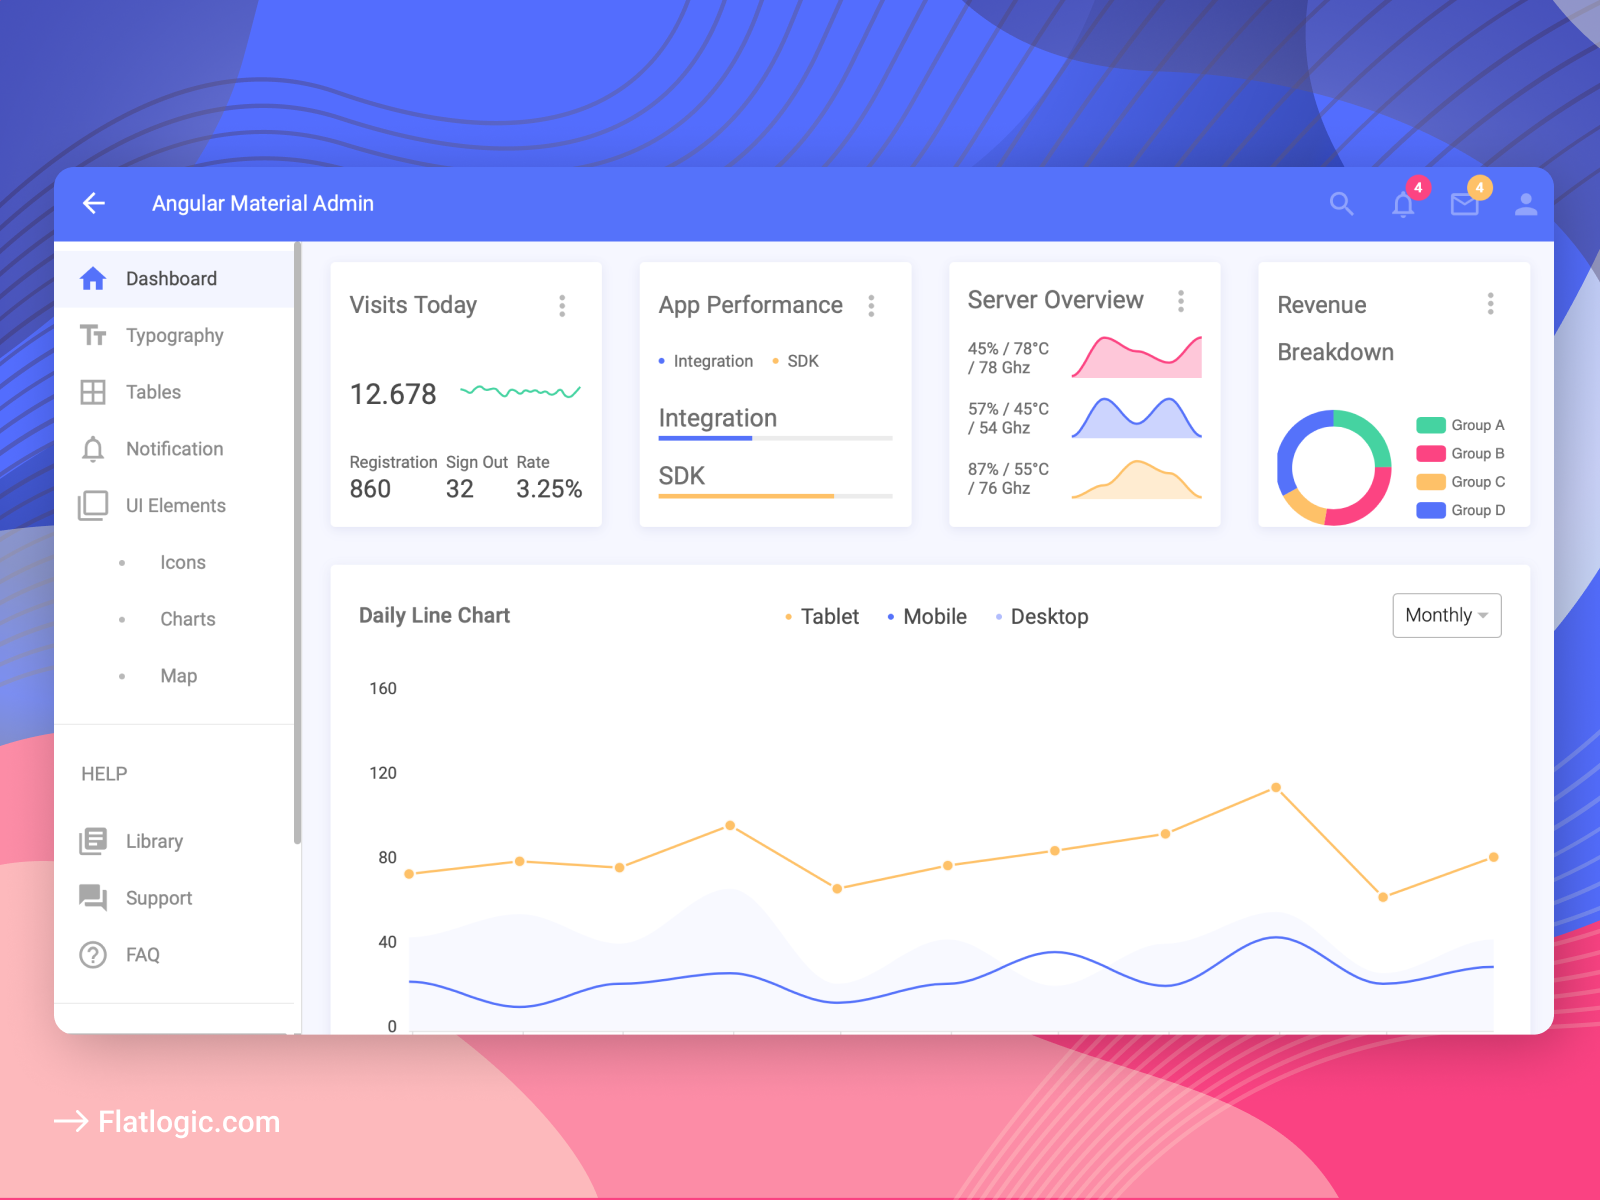 Angular Material Admin Template is Released!